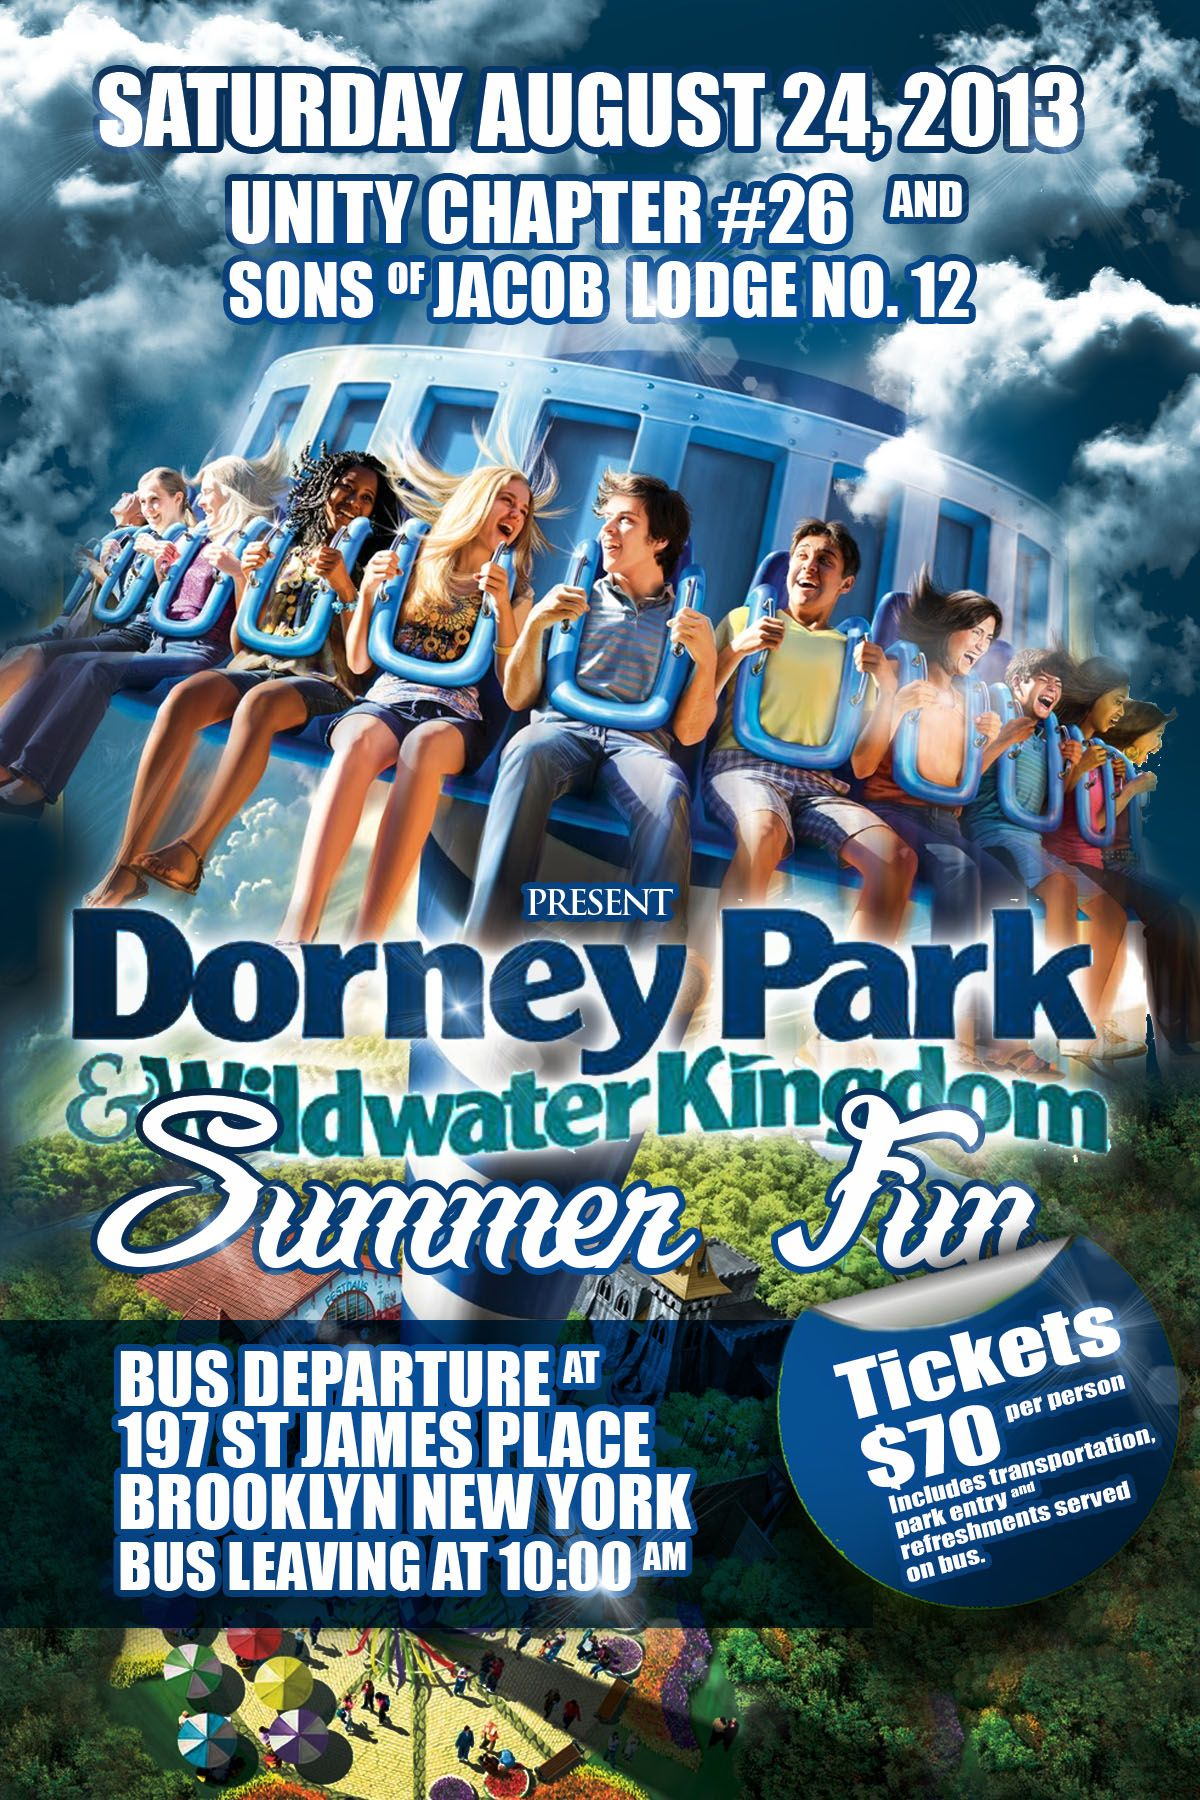 coupons for dorney park 2013